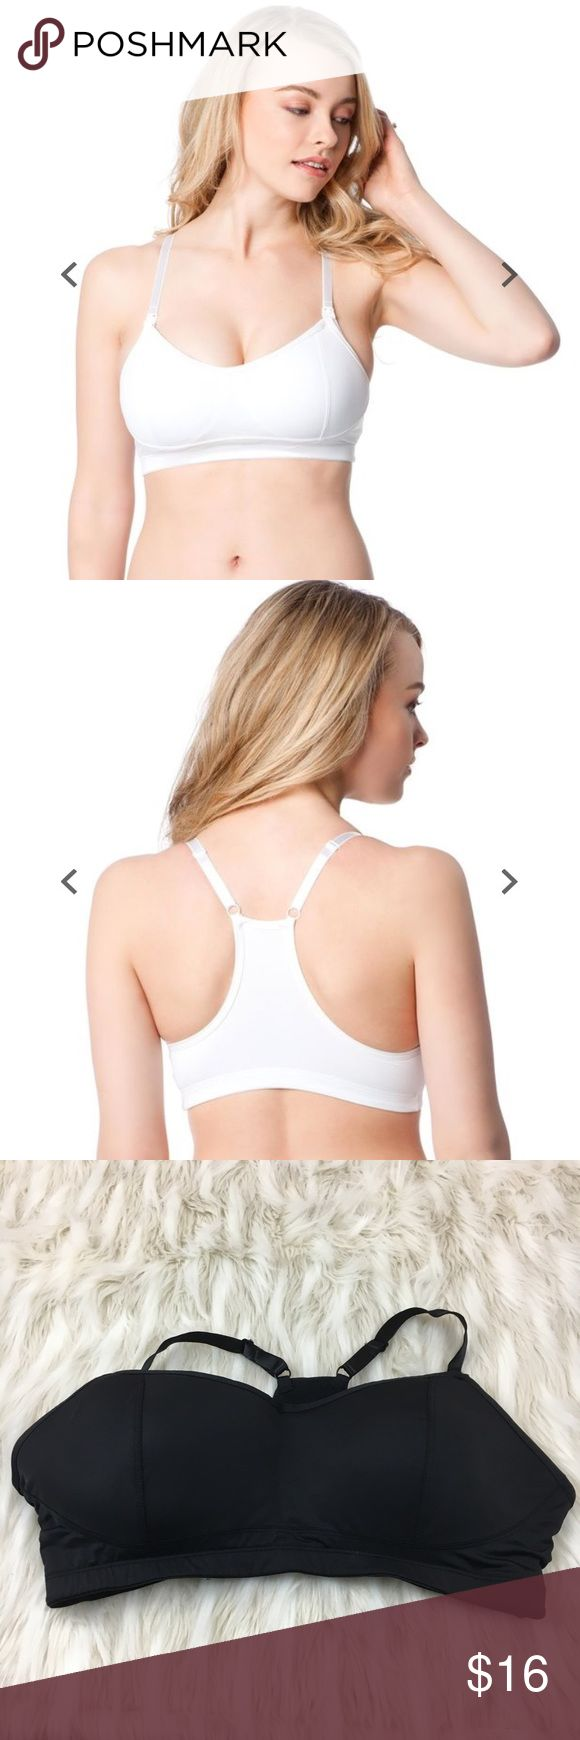 Motherhood Size XL Sports Nursing Bra Maternity 🔸Motherhood Womens Size XL Sports Nursing Bra Maternity Black Clip Down Snaps 🔸Excellent Pre-Loved Condition 🔸NO FLAWS 🔸questions welcomed 🔸reasonable offers always accepted 🔸price reduction & combined shipping available on bundles🔸as seen in pictures 🔸thank you for shopping with thrifty_nerd 🔸SKU D3 Motherhood Maternity Intimates & Sleepwear Bras